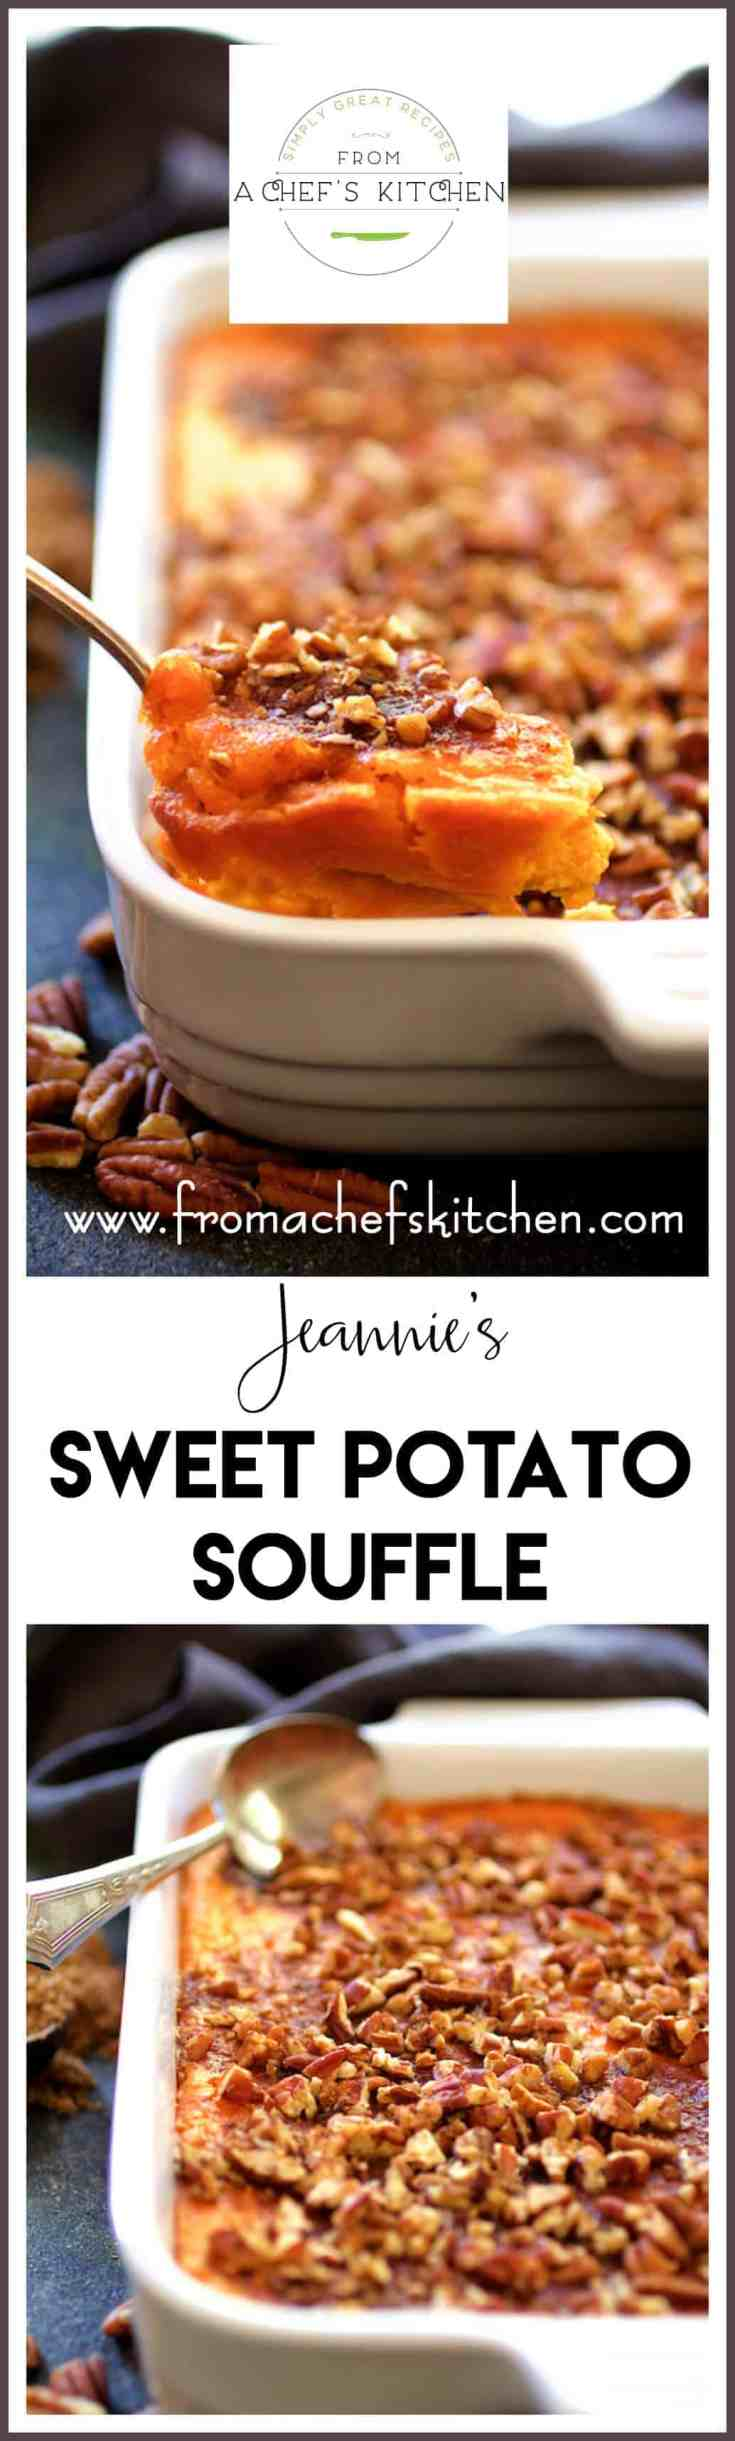 Jeannie's Sweet Potato Souffle is lush and luxurious and the ultimate sweet potato souffle perfect for your holiday table! #sweetpotato #sweetpotatosouffle #sweetpotatocasserole #Thanksgiving #Christmas